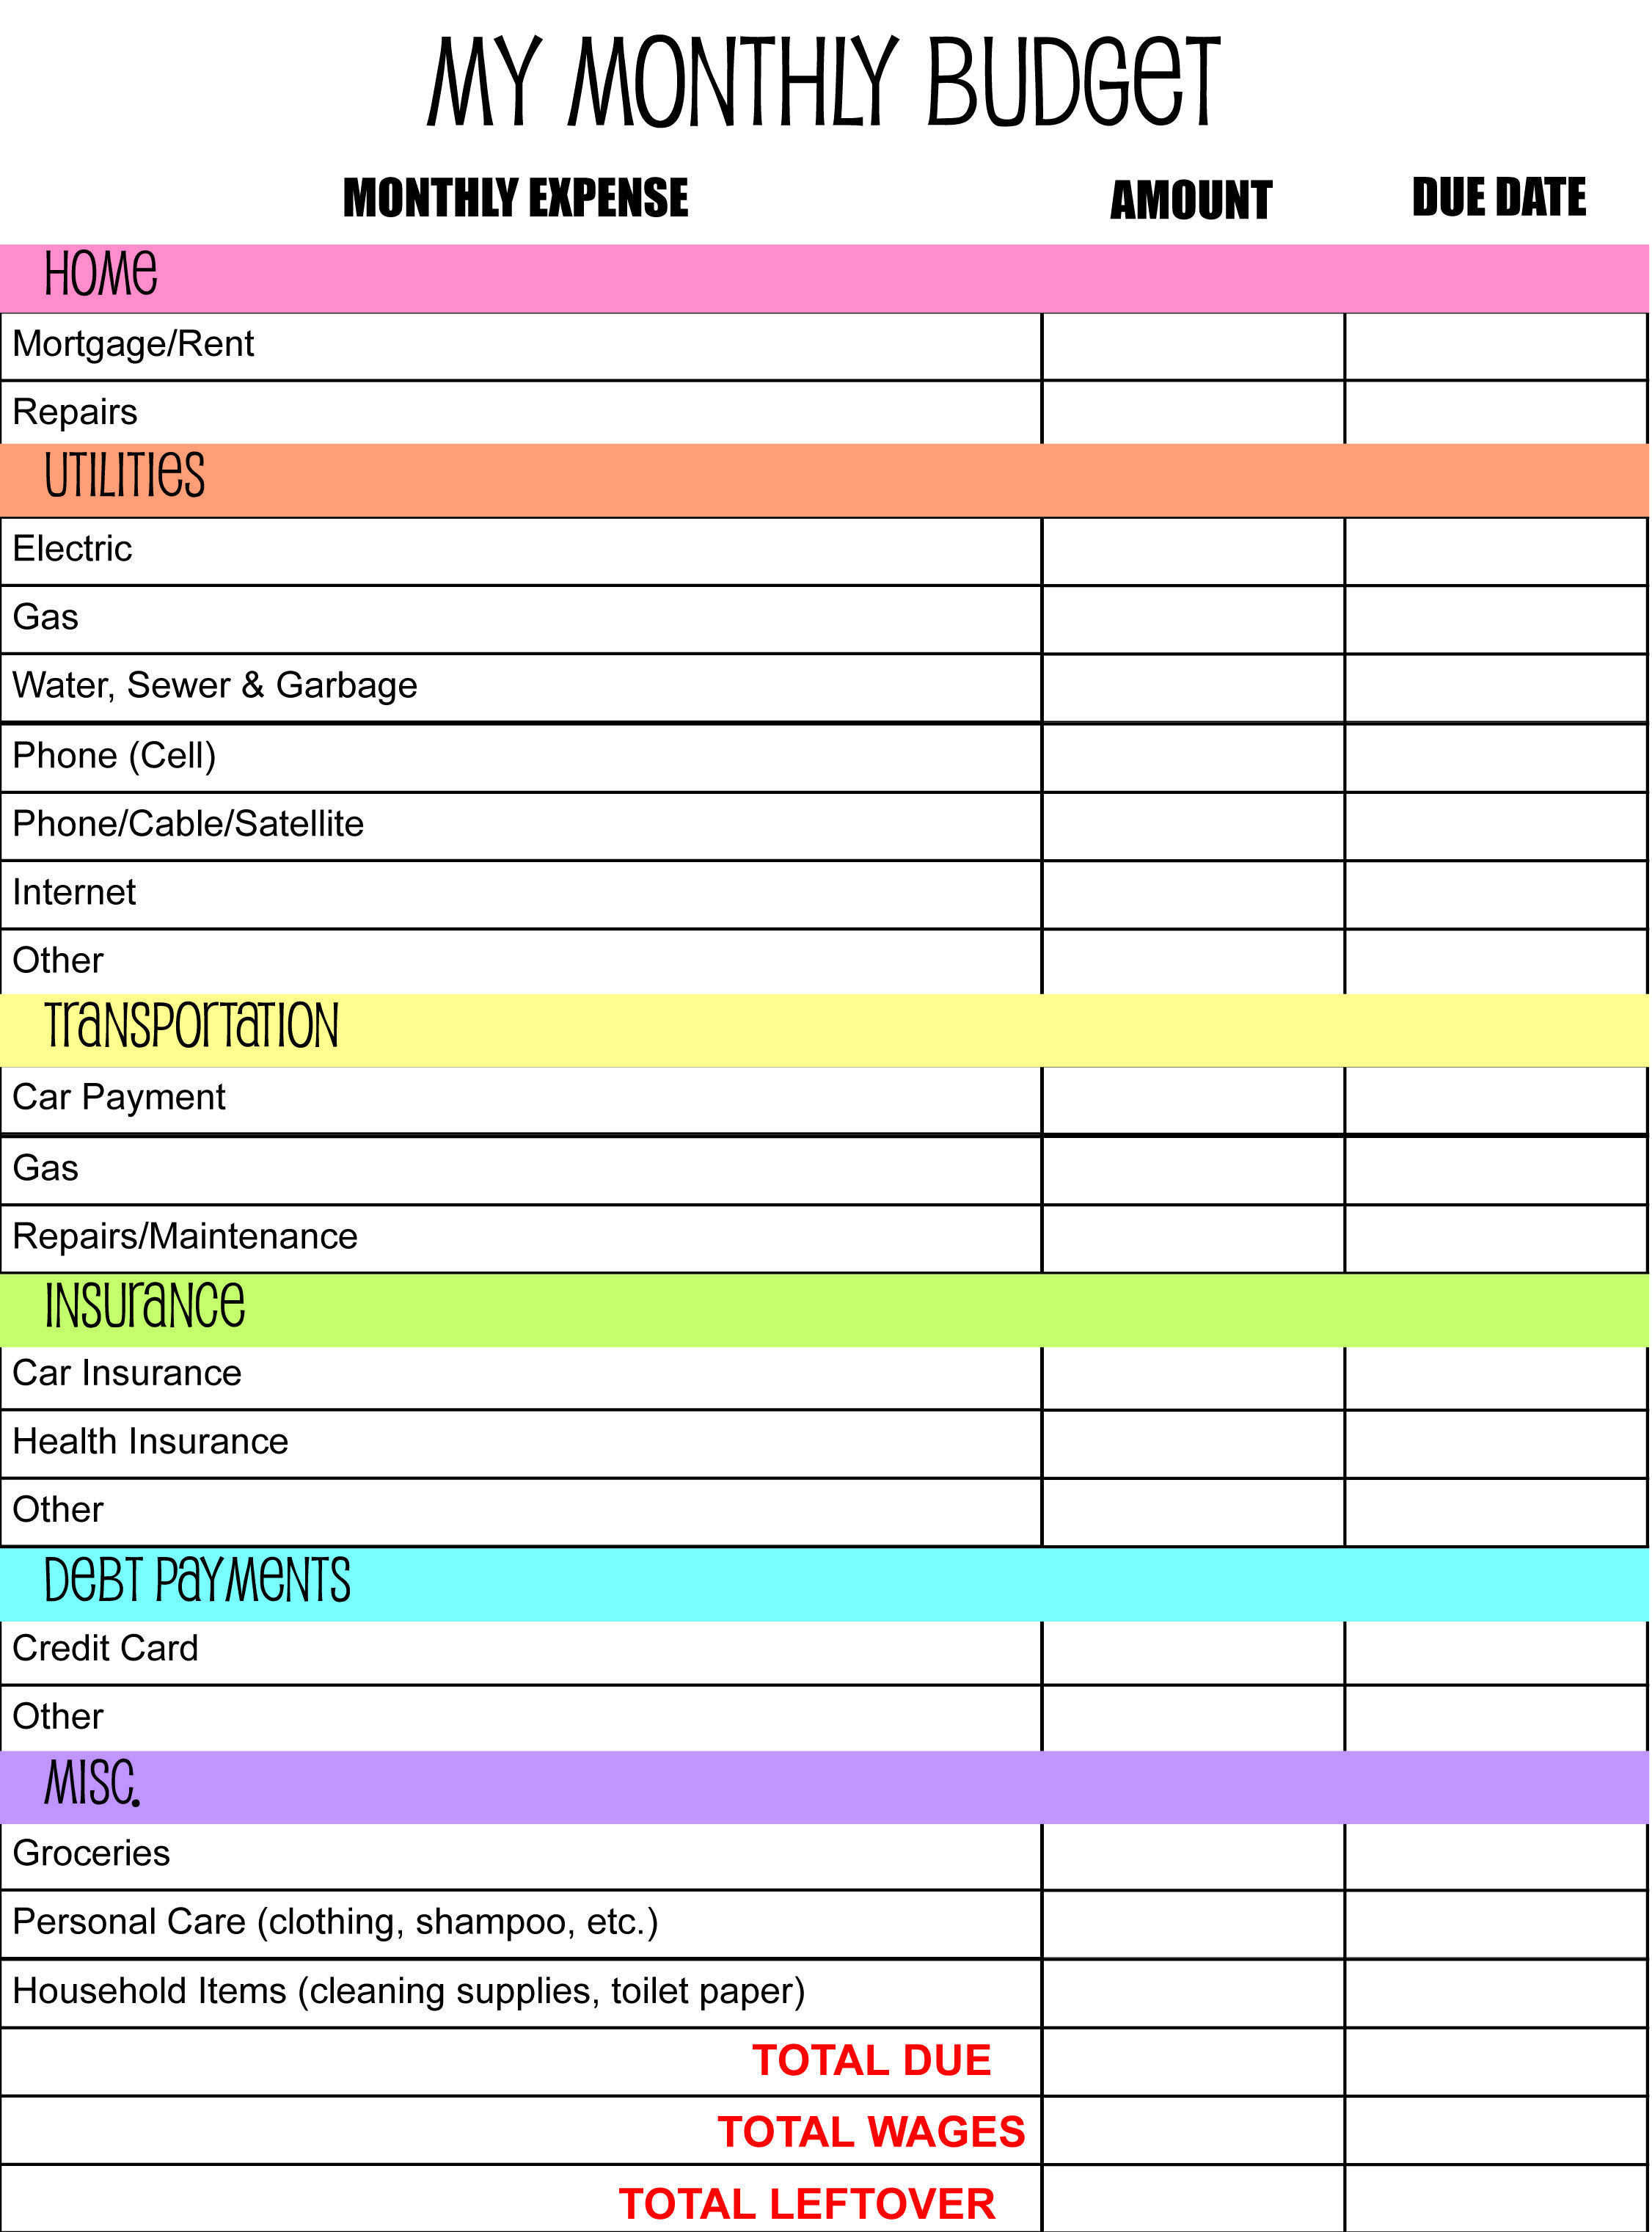 Monthly Budget Planner I made @ Anderson Publications | Organize ...